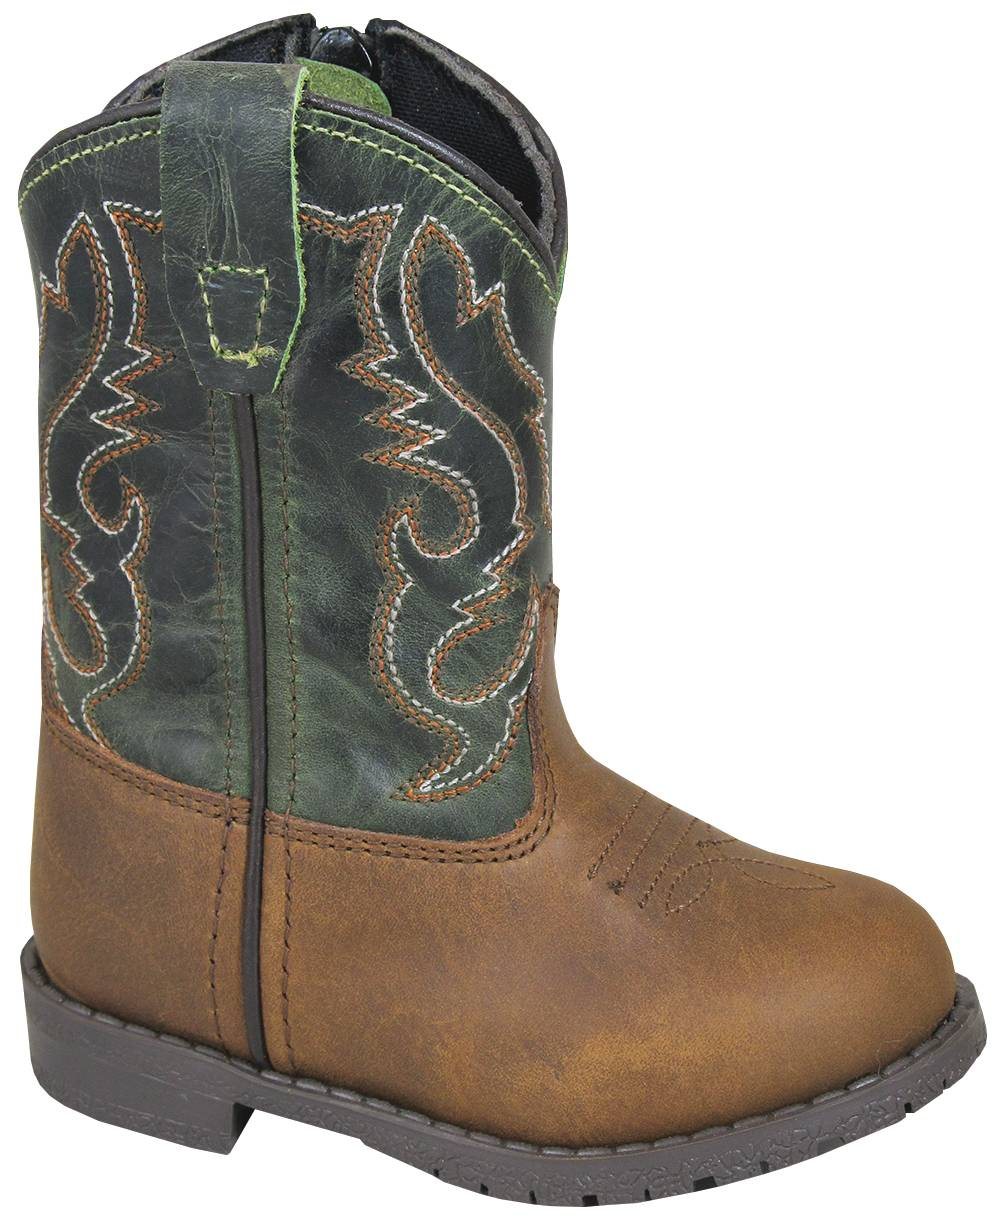 Smoky Mountain Hopalong Boots - Toddler - Brown